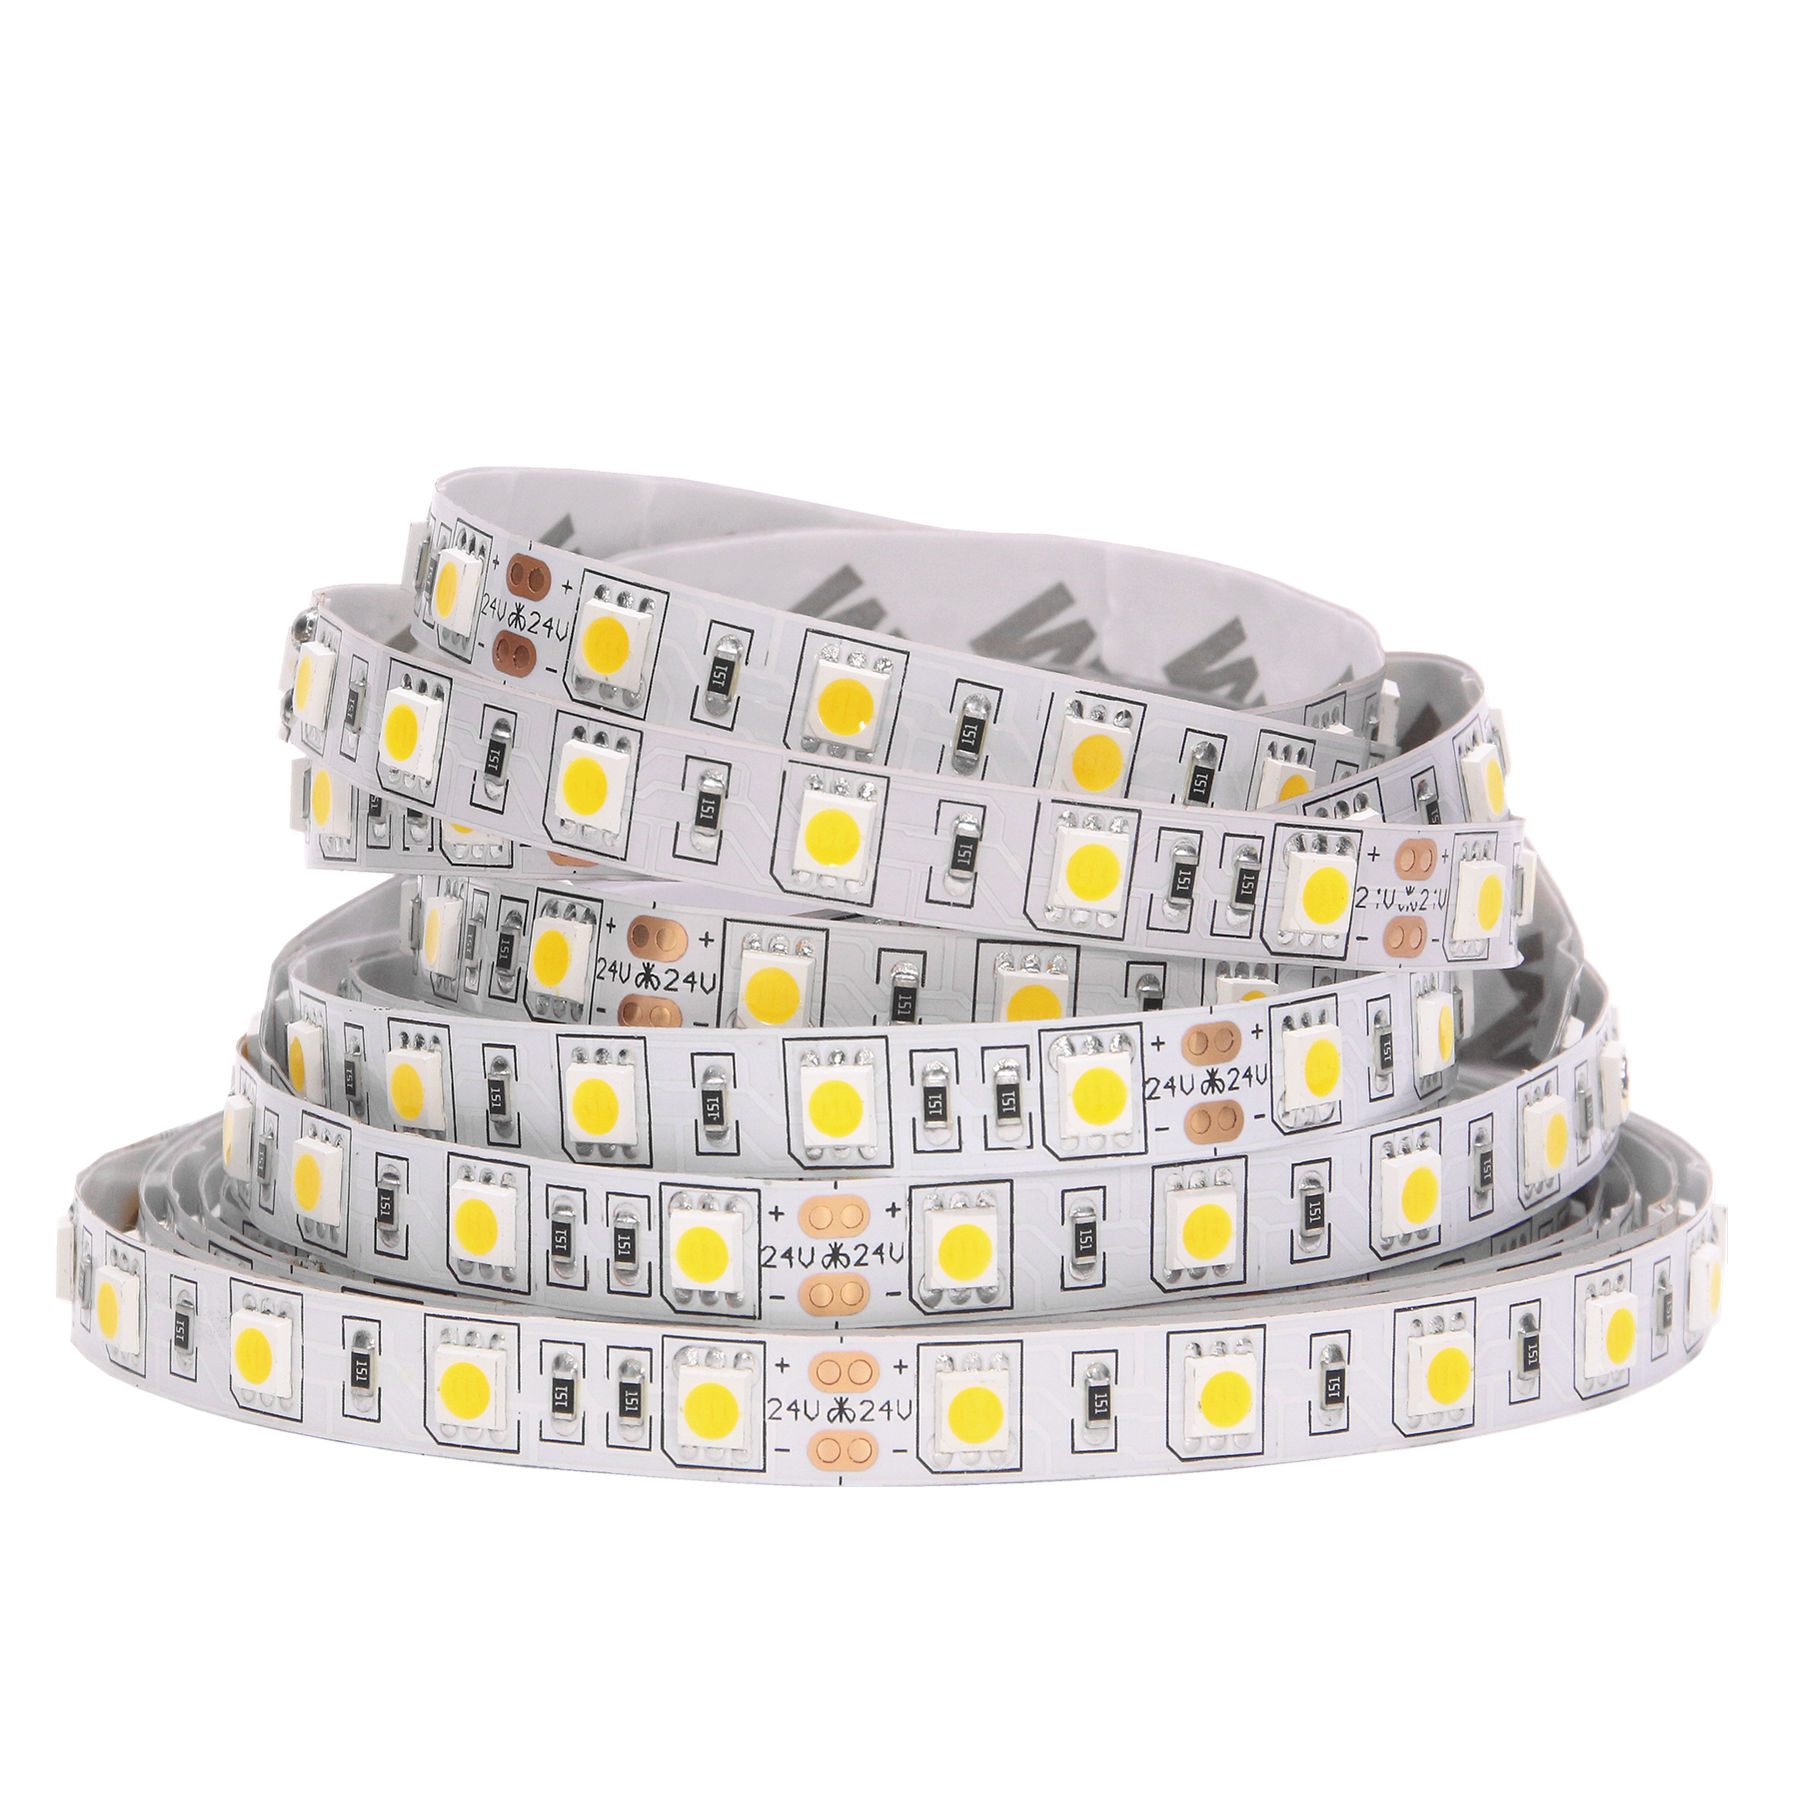 SMD 5050 RGB LED Strip Waterproof 5M 300LED DC 12V RGBW RGBWW Fita LED Light Strips Flexible Neon Tape Luz Monochrome